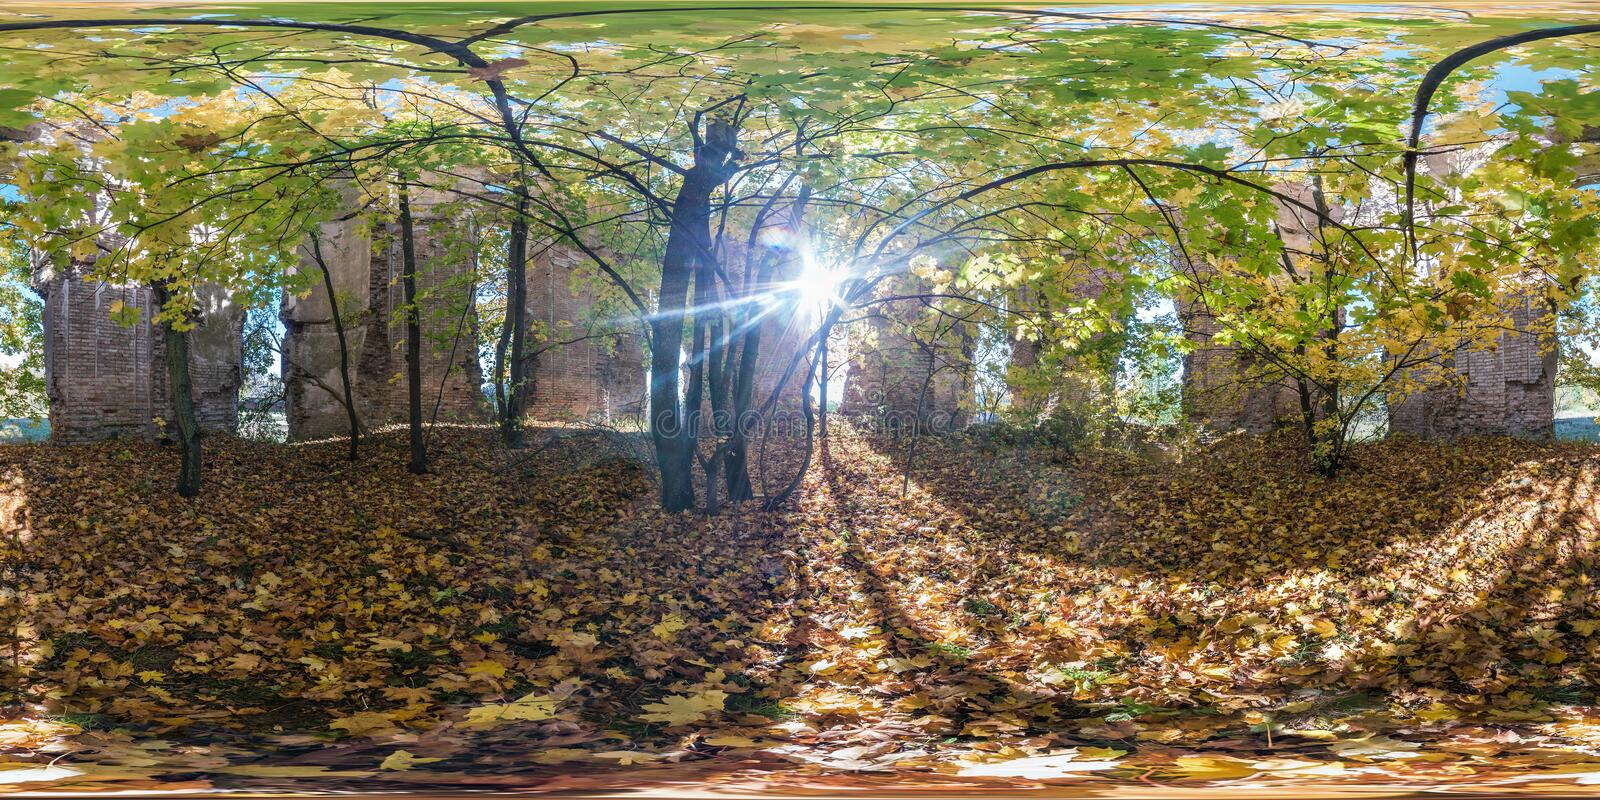 Full seamless spherical cube 360 by 180 degrees angle view panorama inside ancient abandoned destroyed stone tomb in autumn forest royalty free stock photography